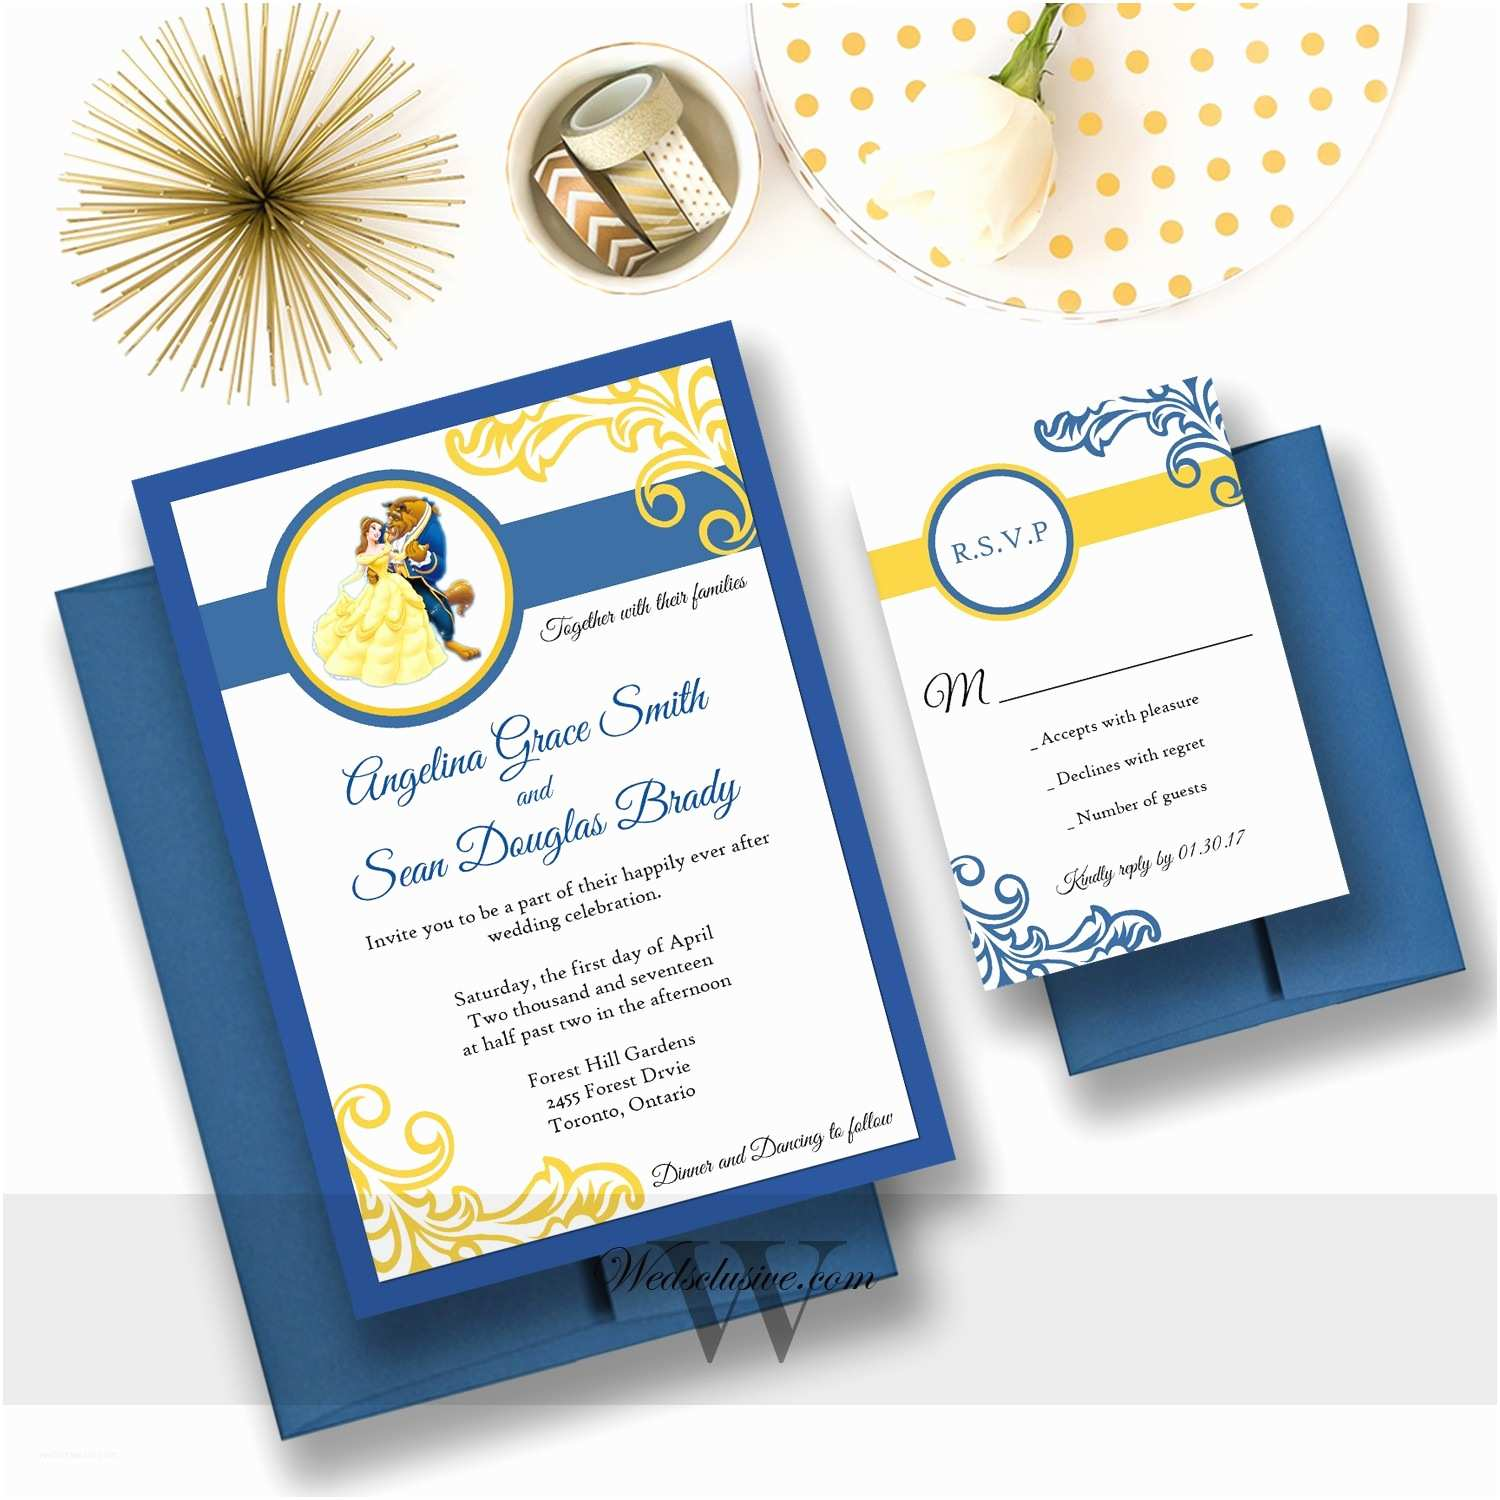 Beauty and the Beast Inspired Wedding Invitations Stunning Beauty and the Beast Wedding Invitations